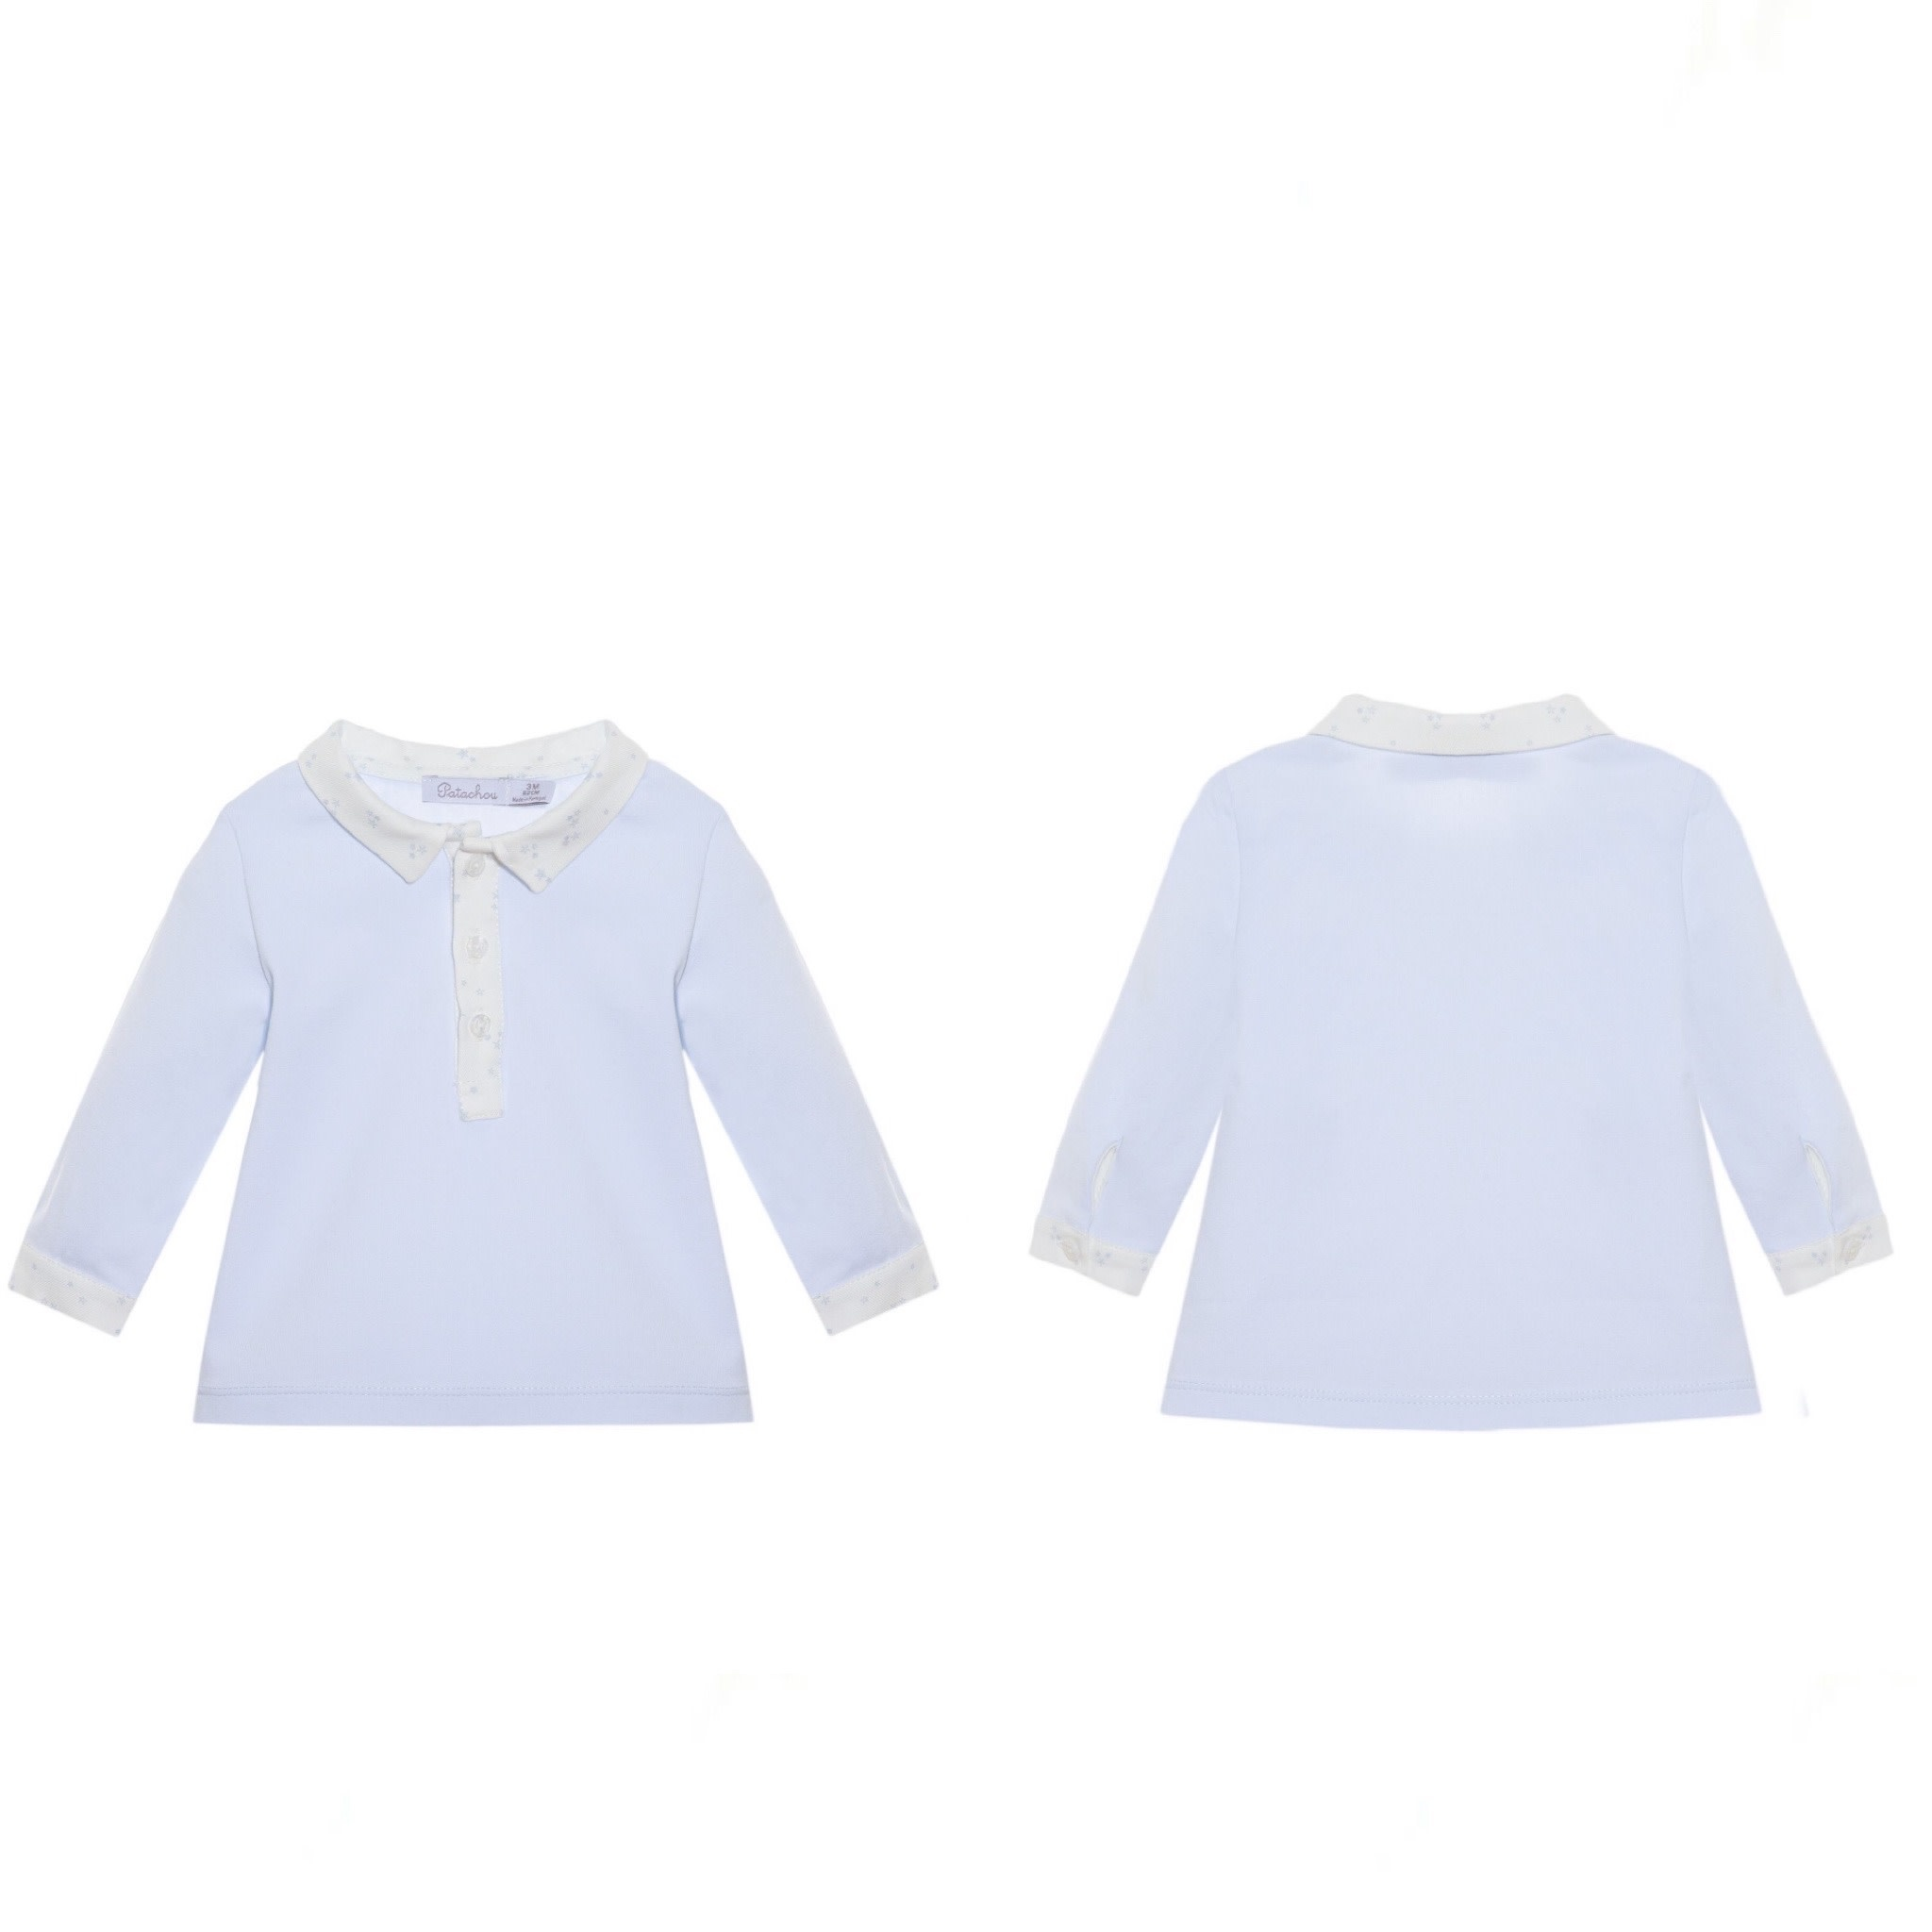 Patachou Patachou  StarsPale Blue Top  and White Trouser Set